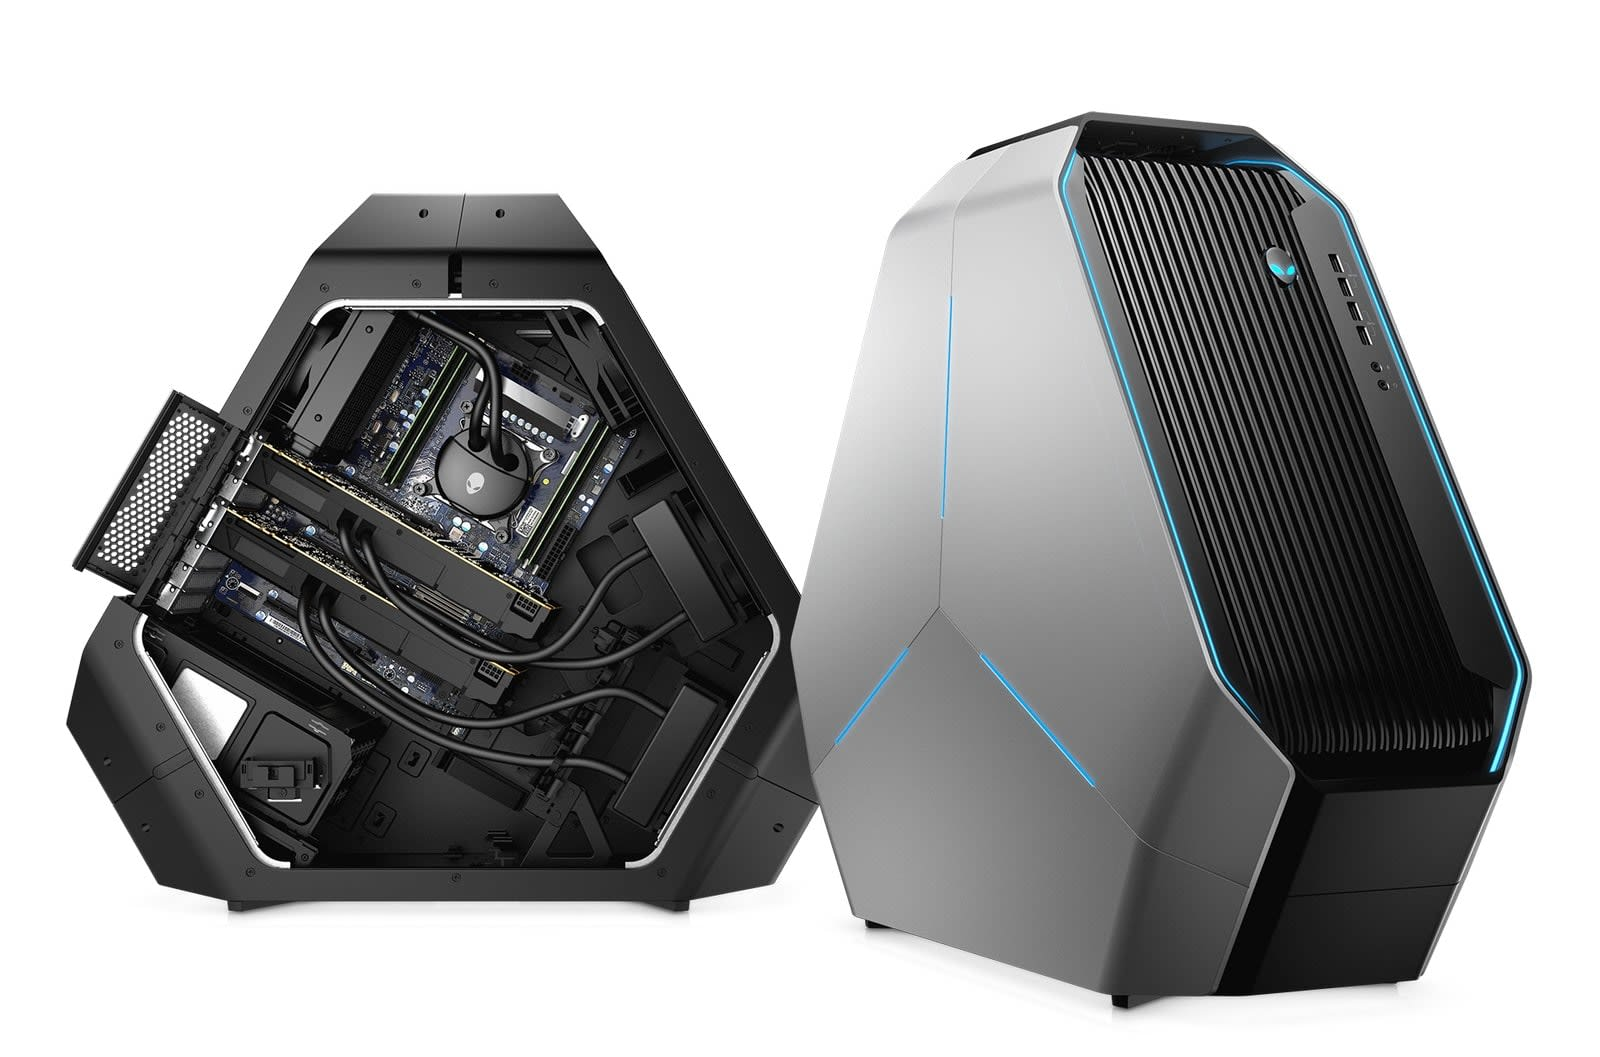 Dell's Alienware desktops get upgraded with NVIDIA's RTX